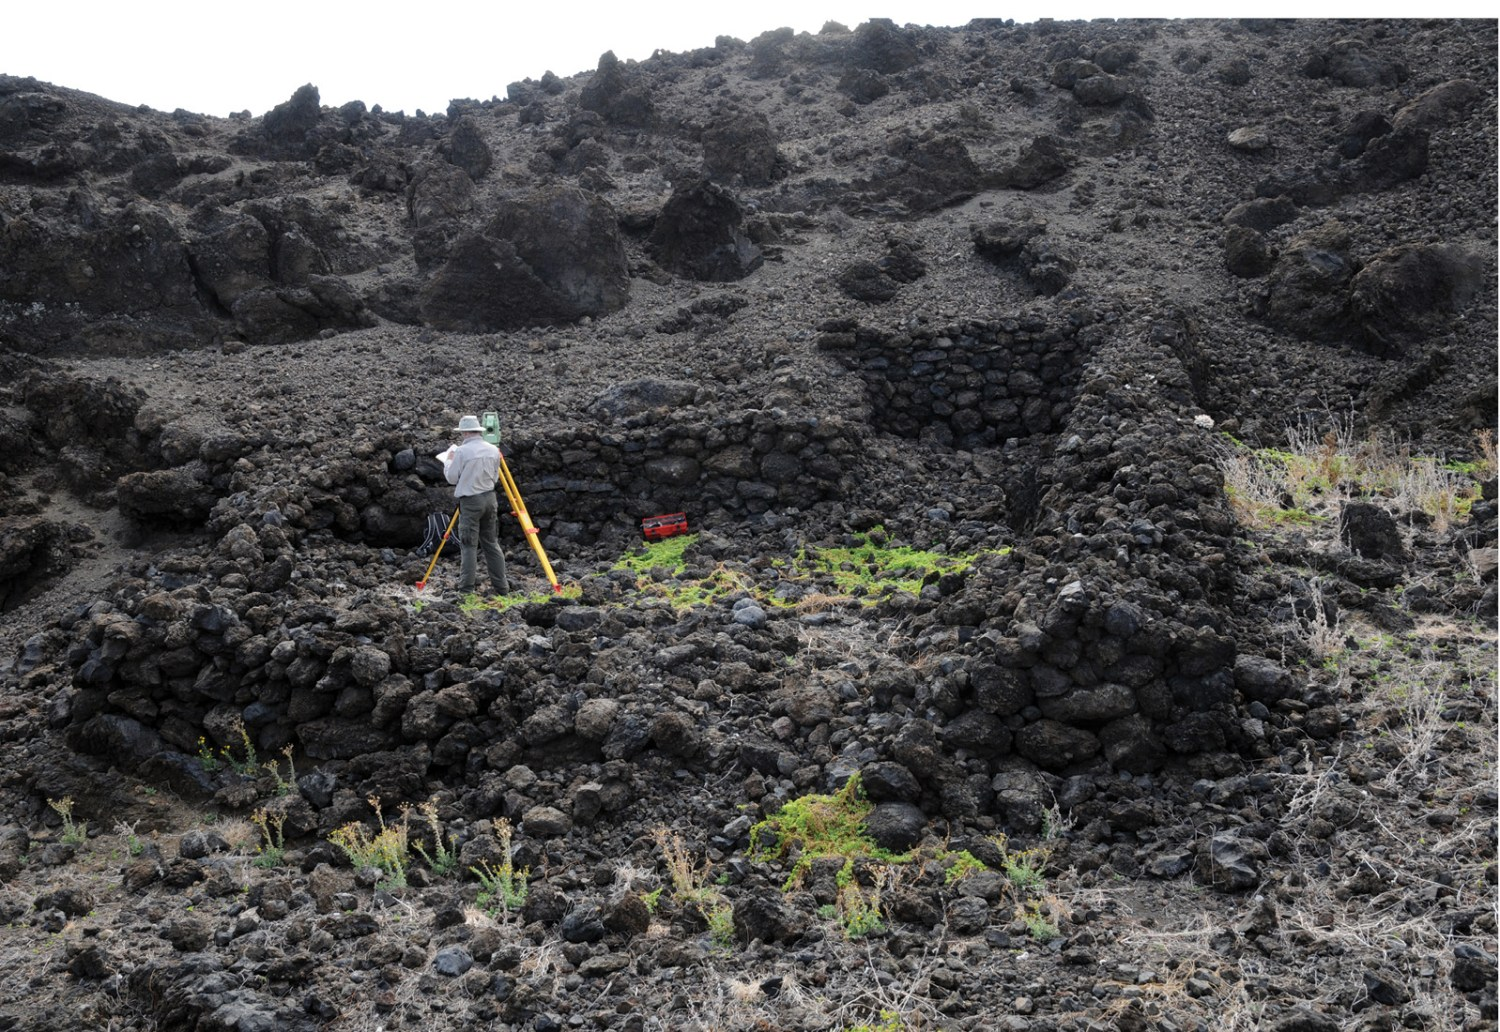 right Survey underway at heiau site ALE-140. The temple measures about 10m by 10m, with a notch creating a small room.